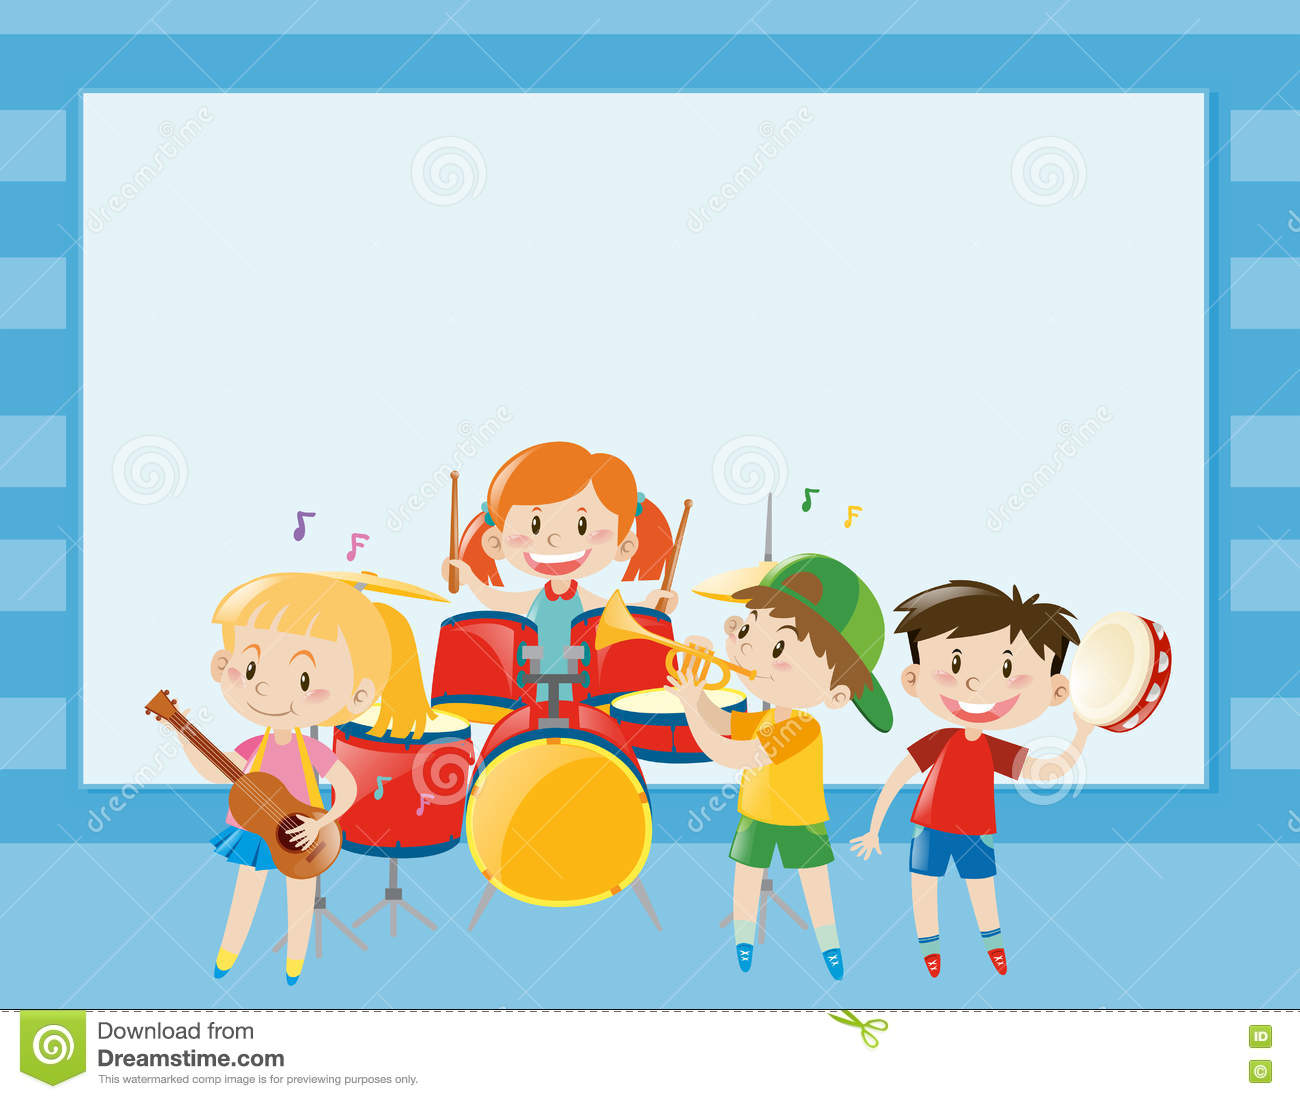 Border template with kids playing music in band